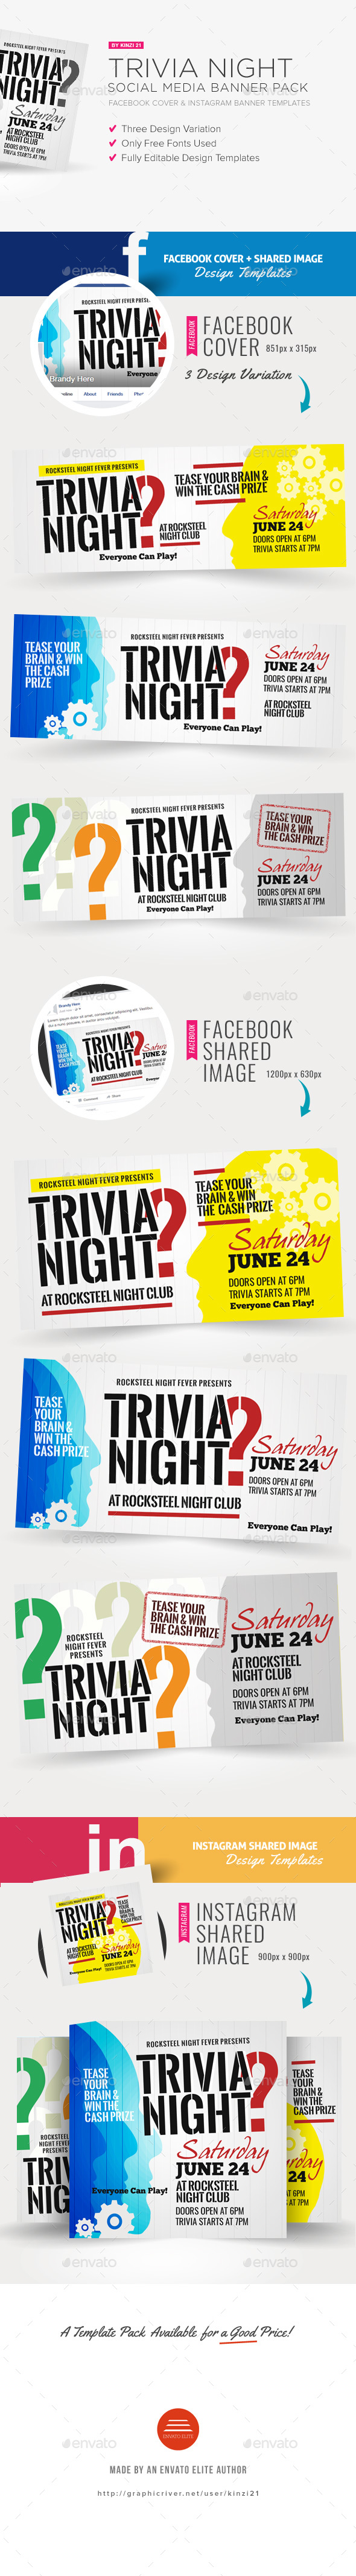 Trivia Night Social Media Pack - Social Media Web Elements